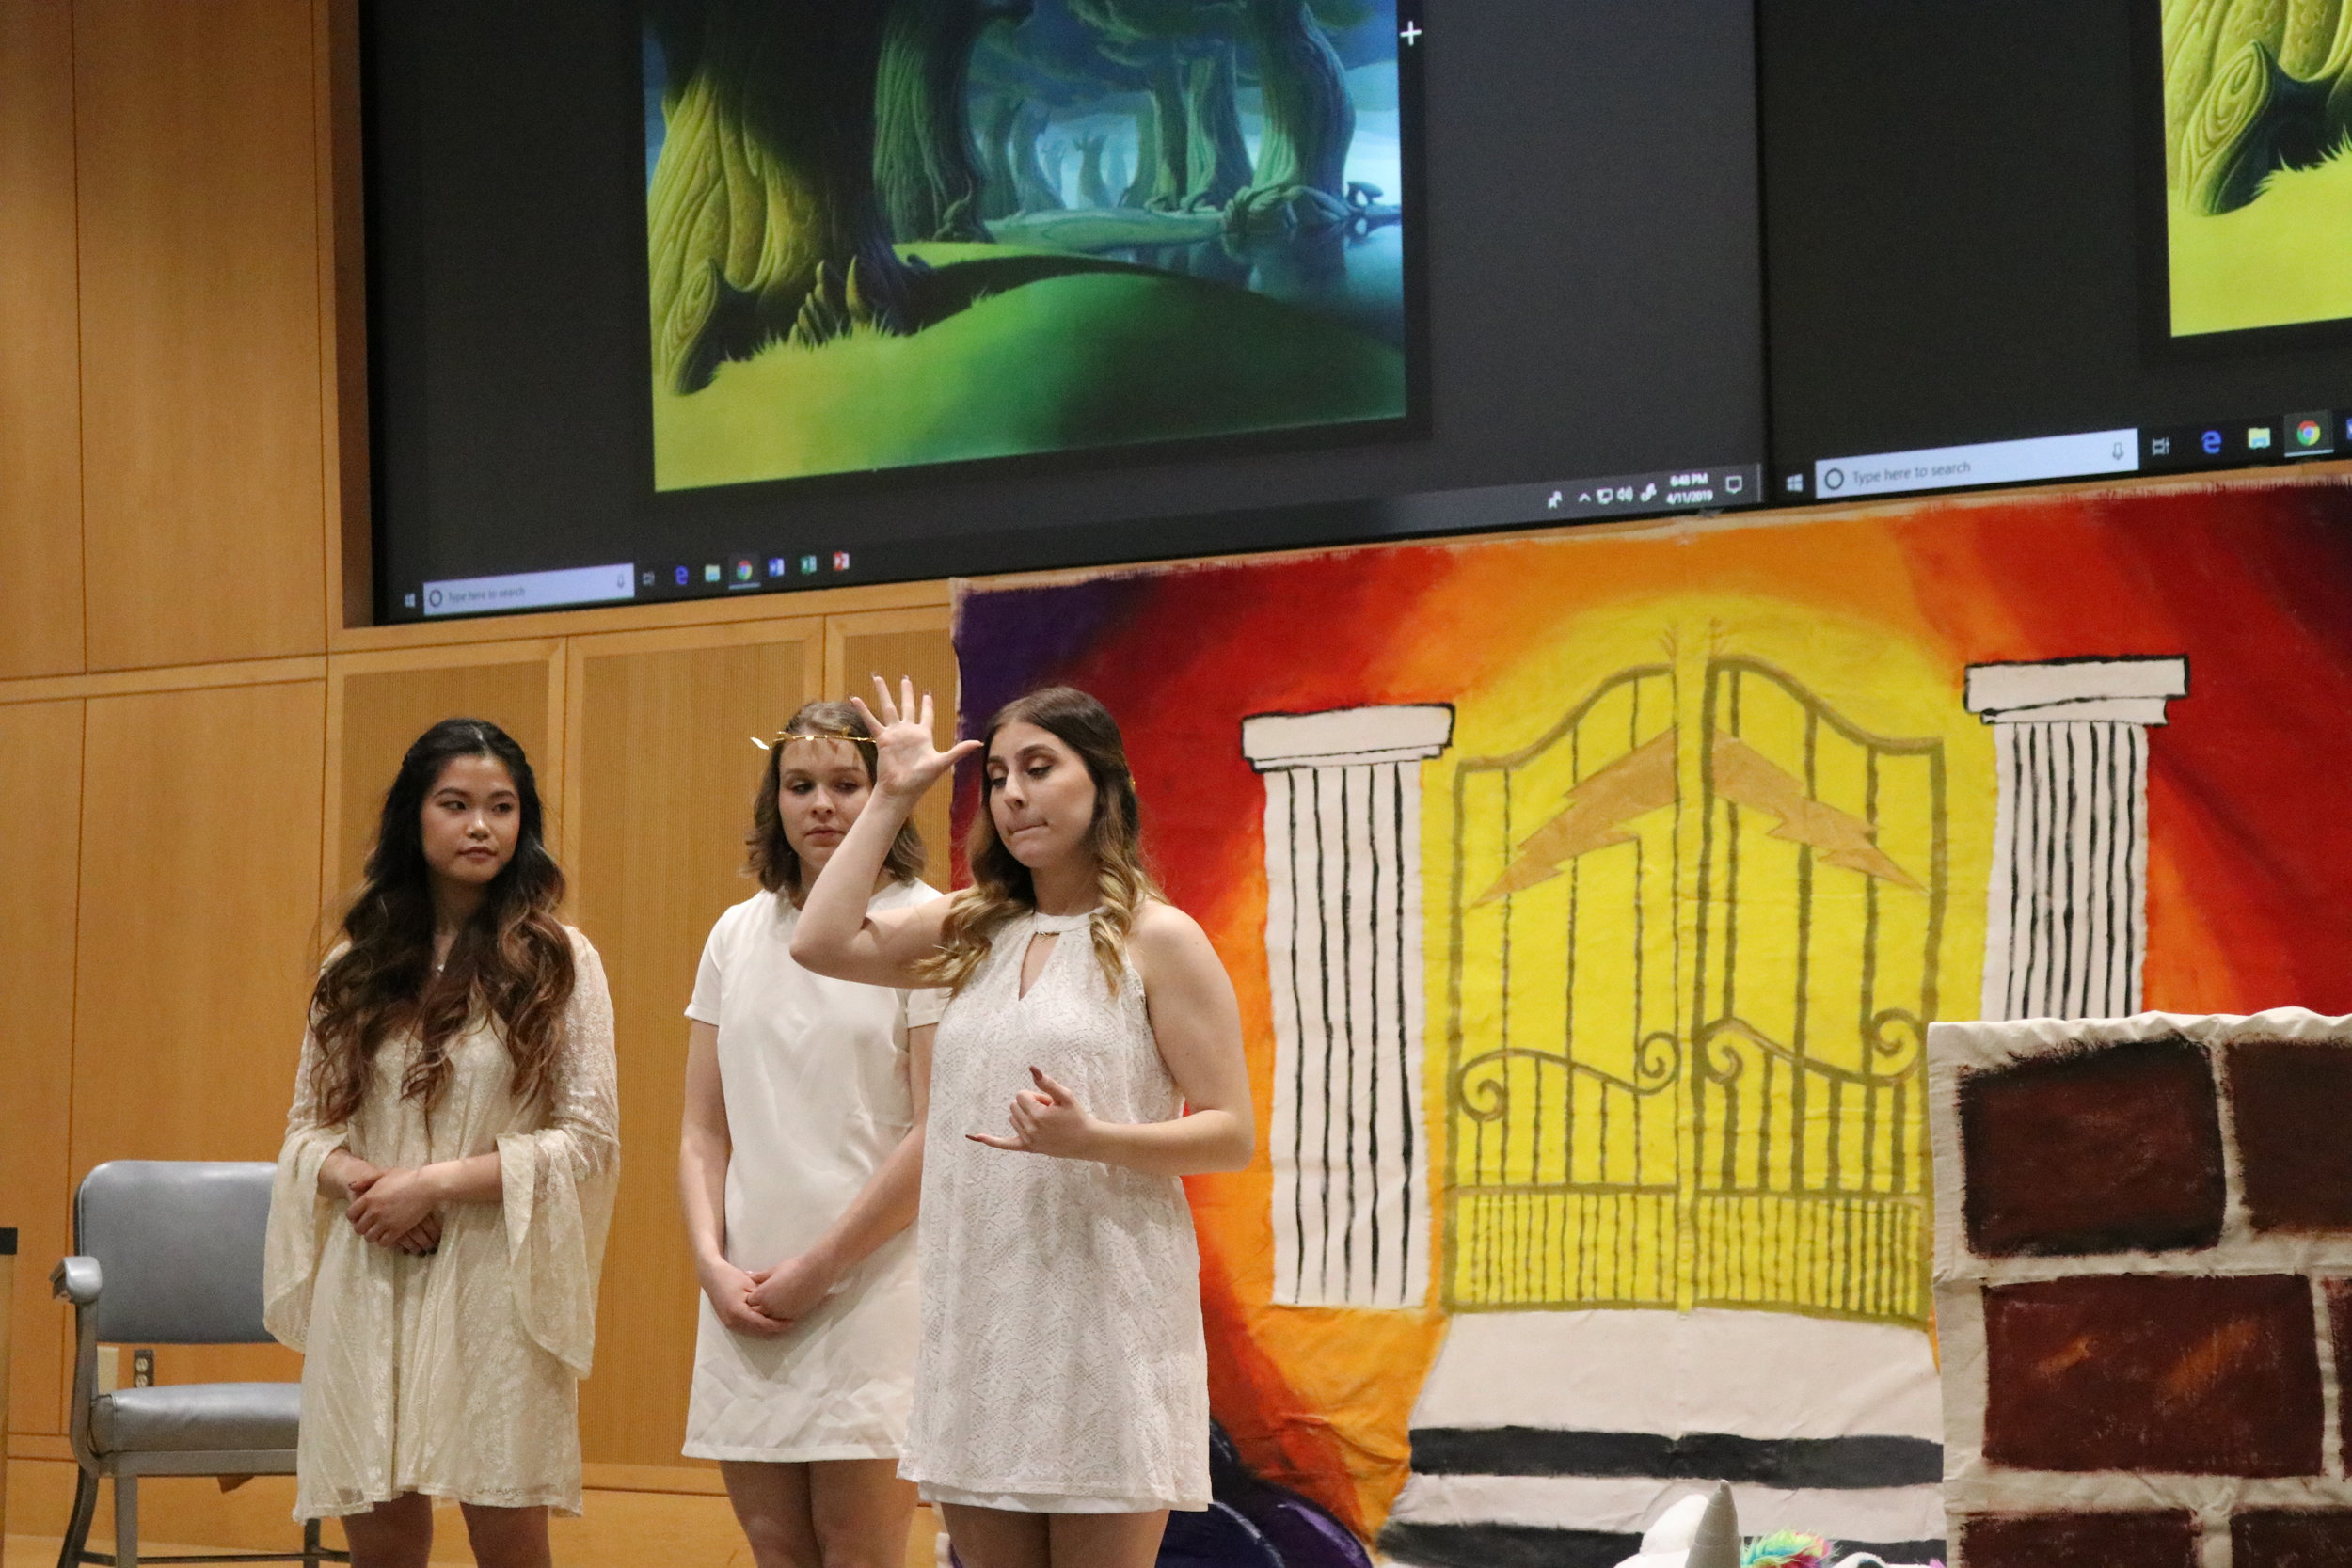 """The UConn American Sign Language club puts on a show for students and community members during Deaf Awareness Day on Thursday night. Students from the ASL 4 class worked for months to create a play version of """"Hercules"""" in American Sign Language for the audience to enjoy (Maggie Chafouleas)"""